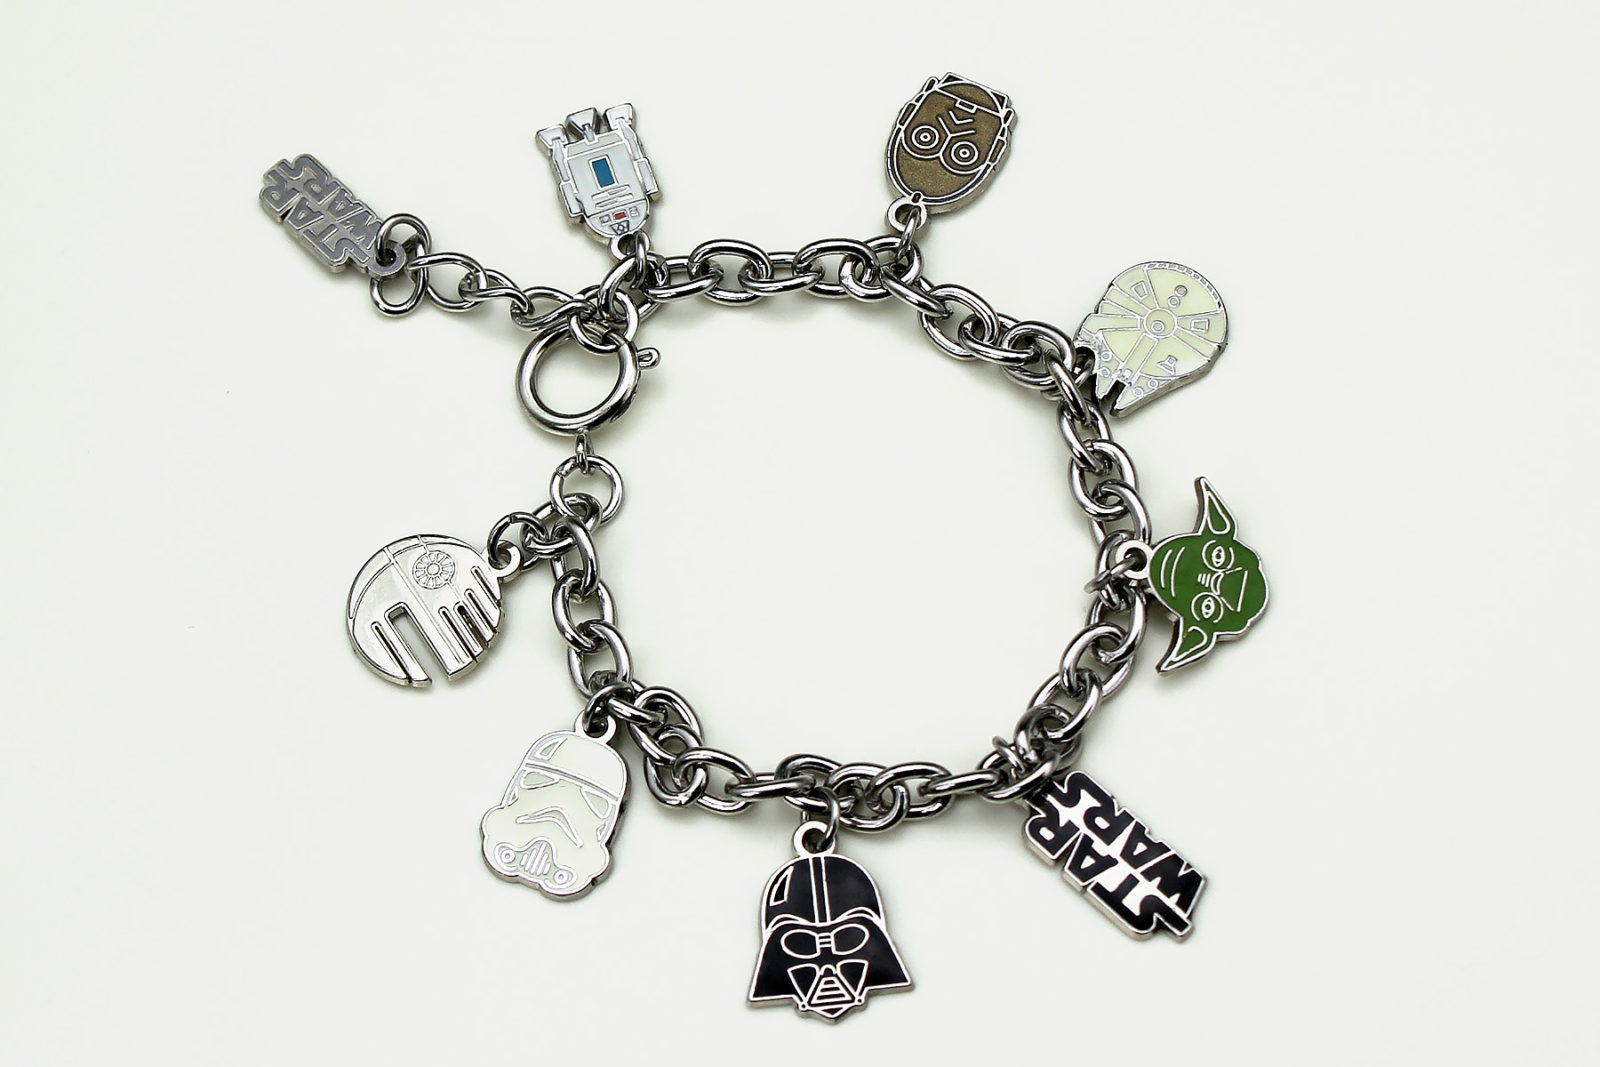 Review – Love And Madness charm bracelet